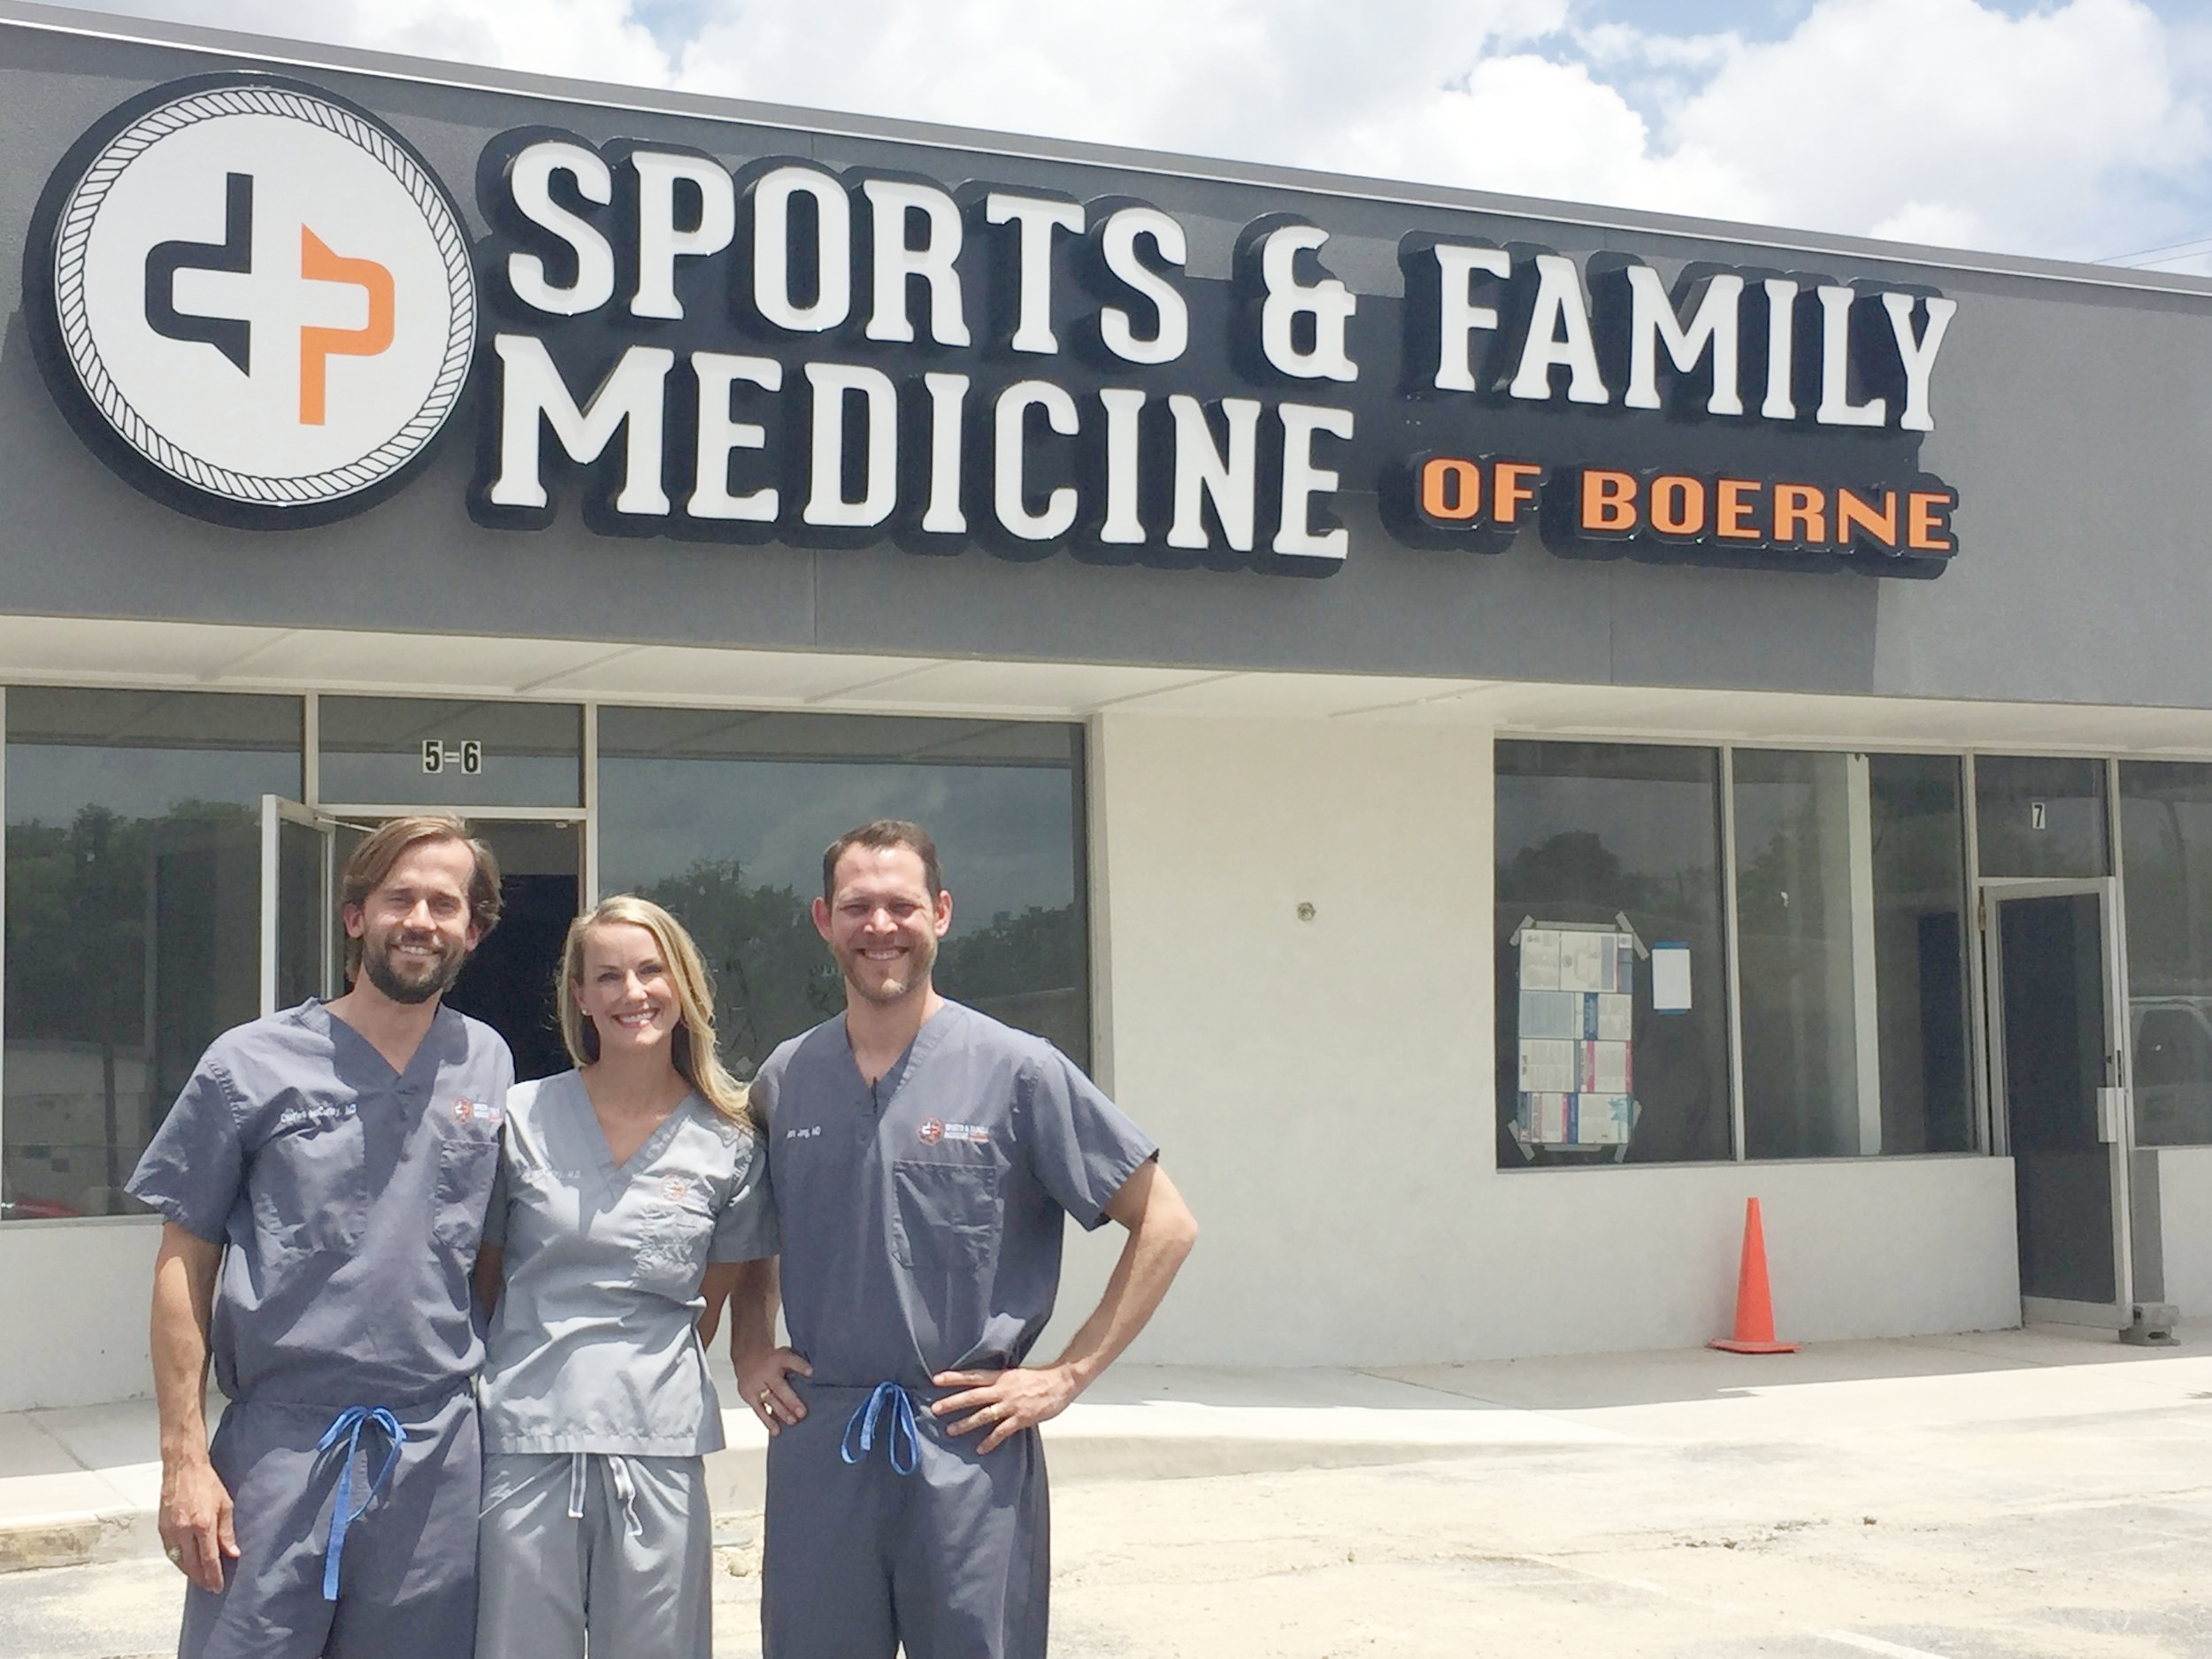 Dr. Charles McCurley, Dr. Wendy McCurley and Dr. Mark Jung are moving their practice to a gentrifying North Main Street in Boerne.